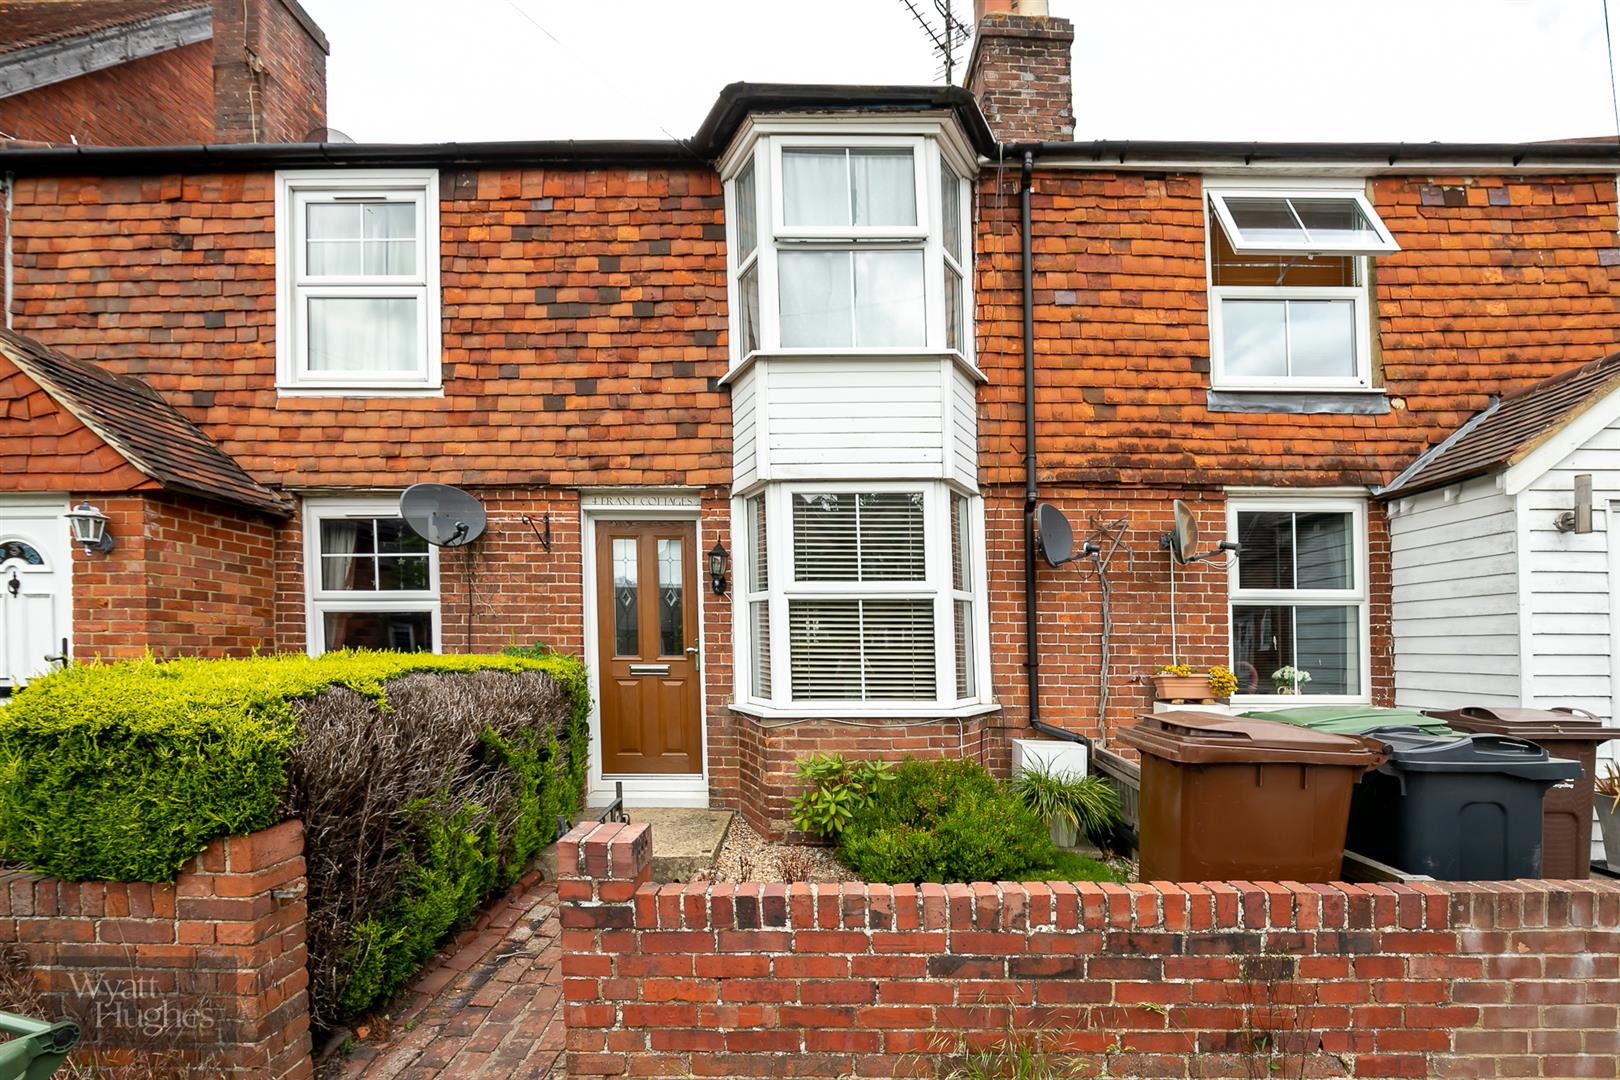 2 bed house for sale in High Street, Ticehurst, TN5